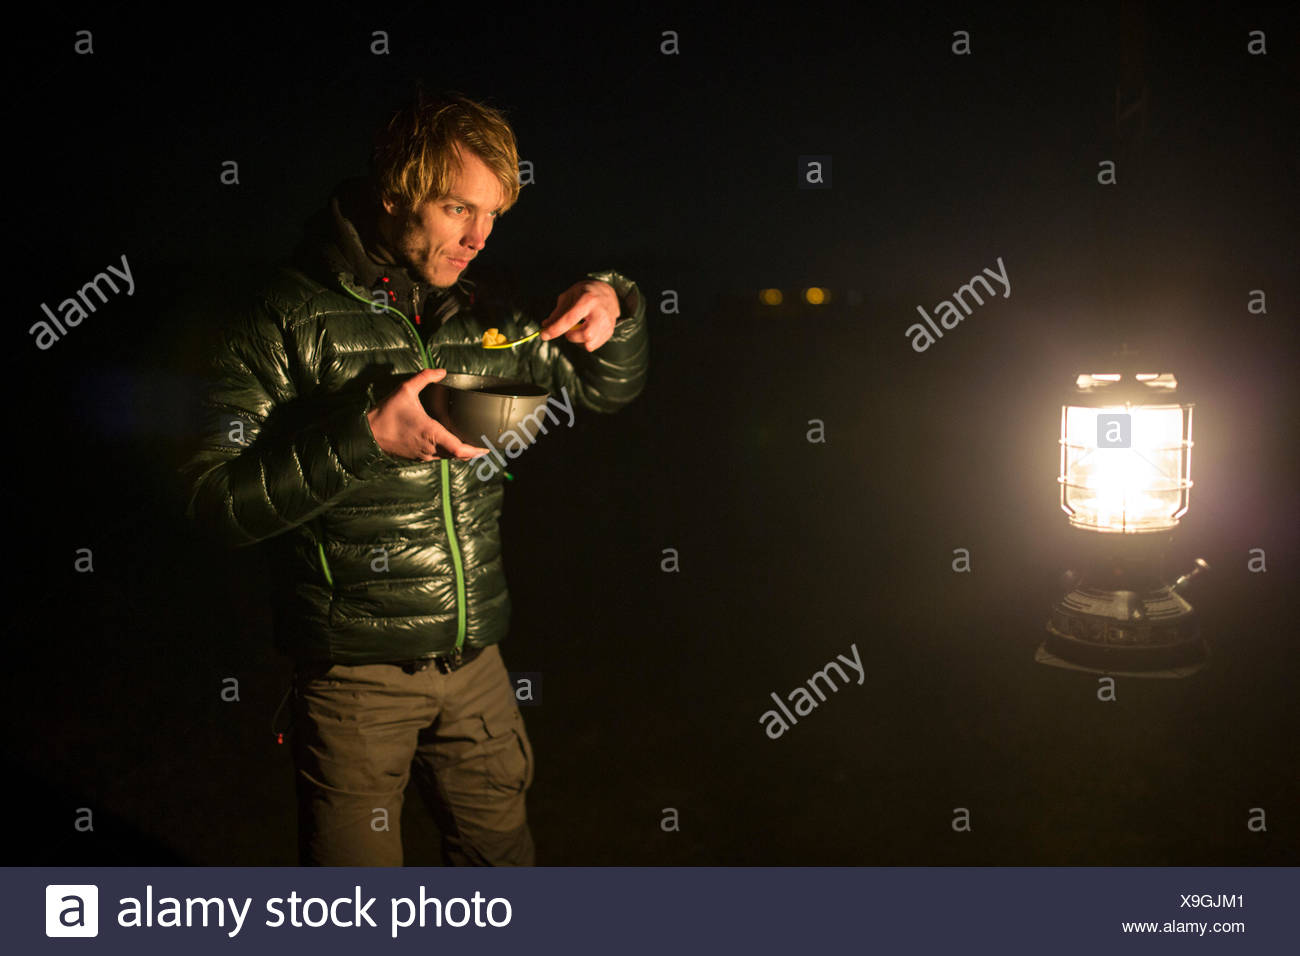 Man eats from mess kit and looks in a lantern - Stock Image